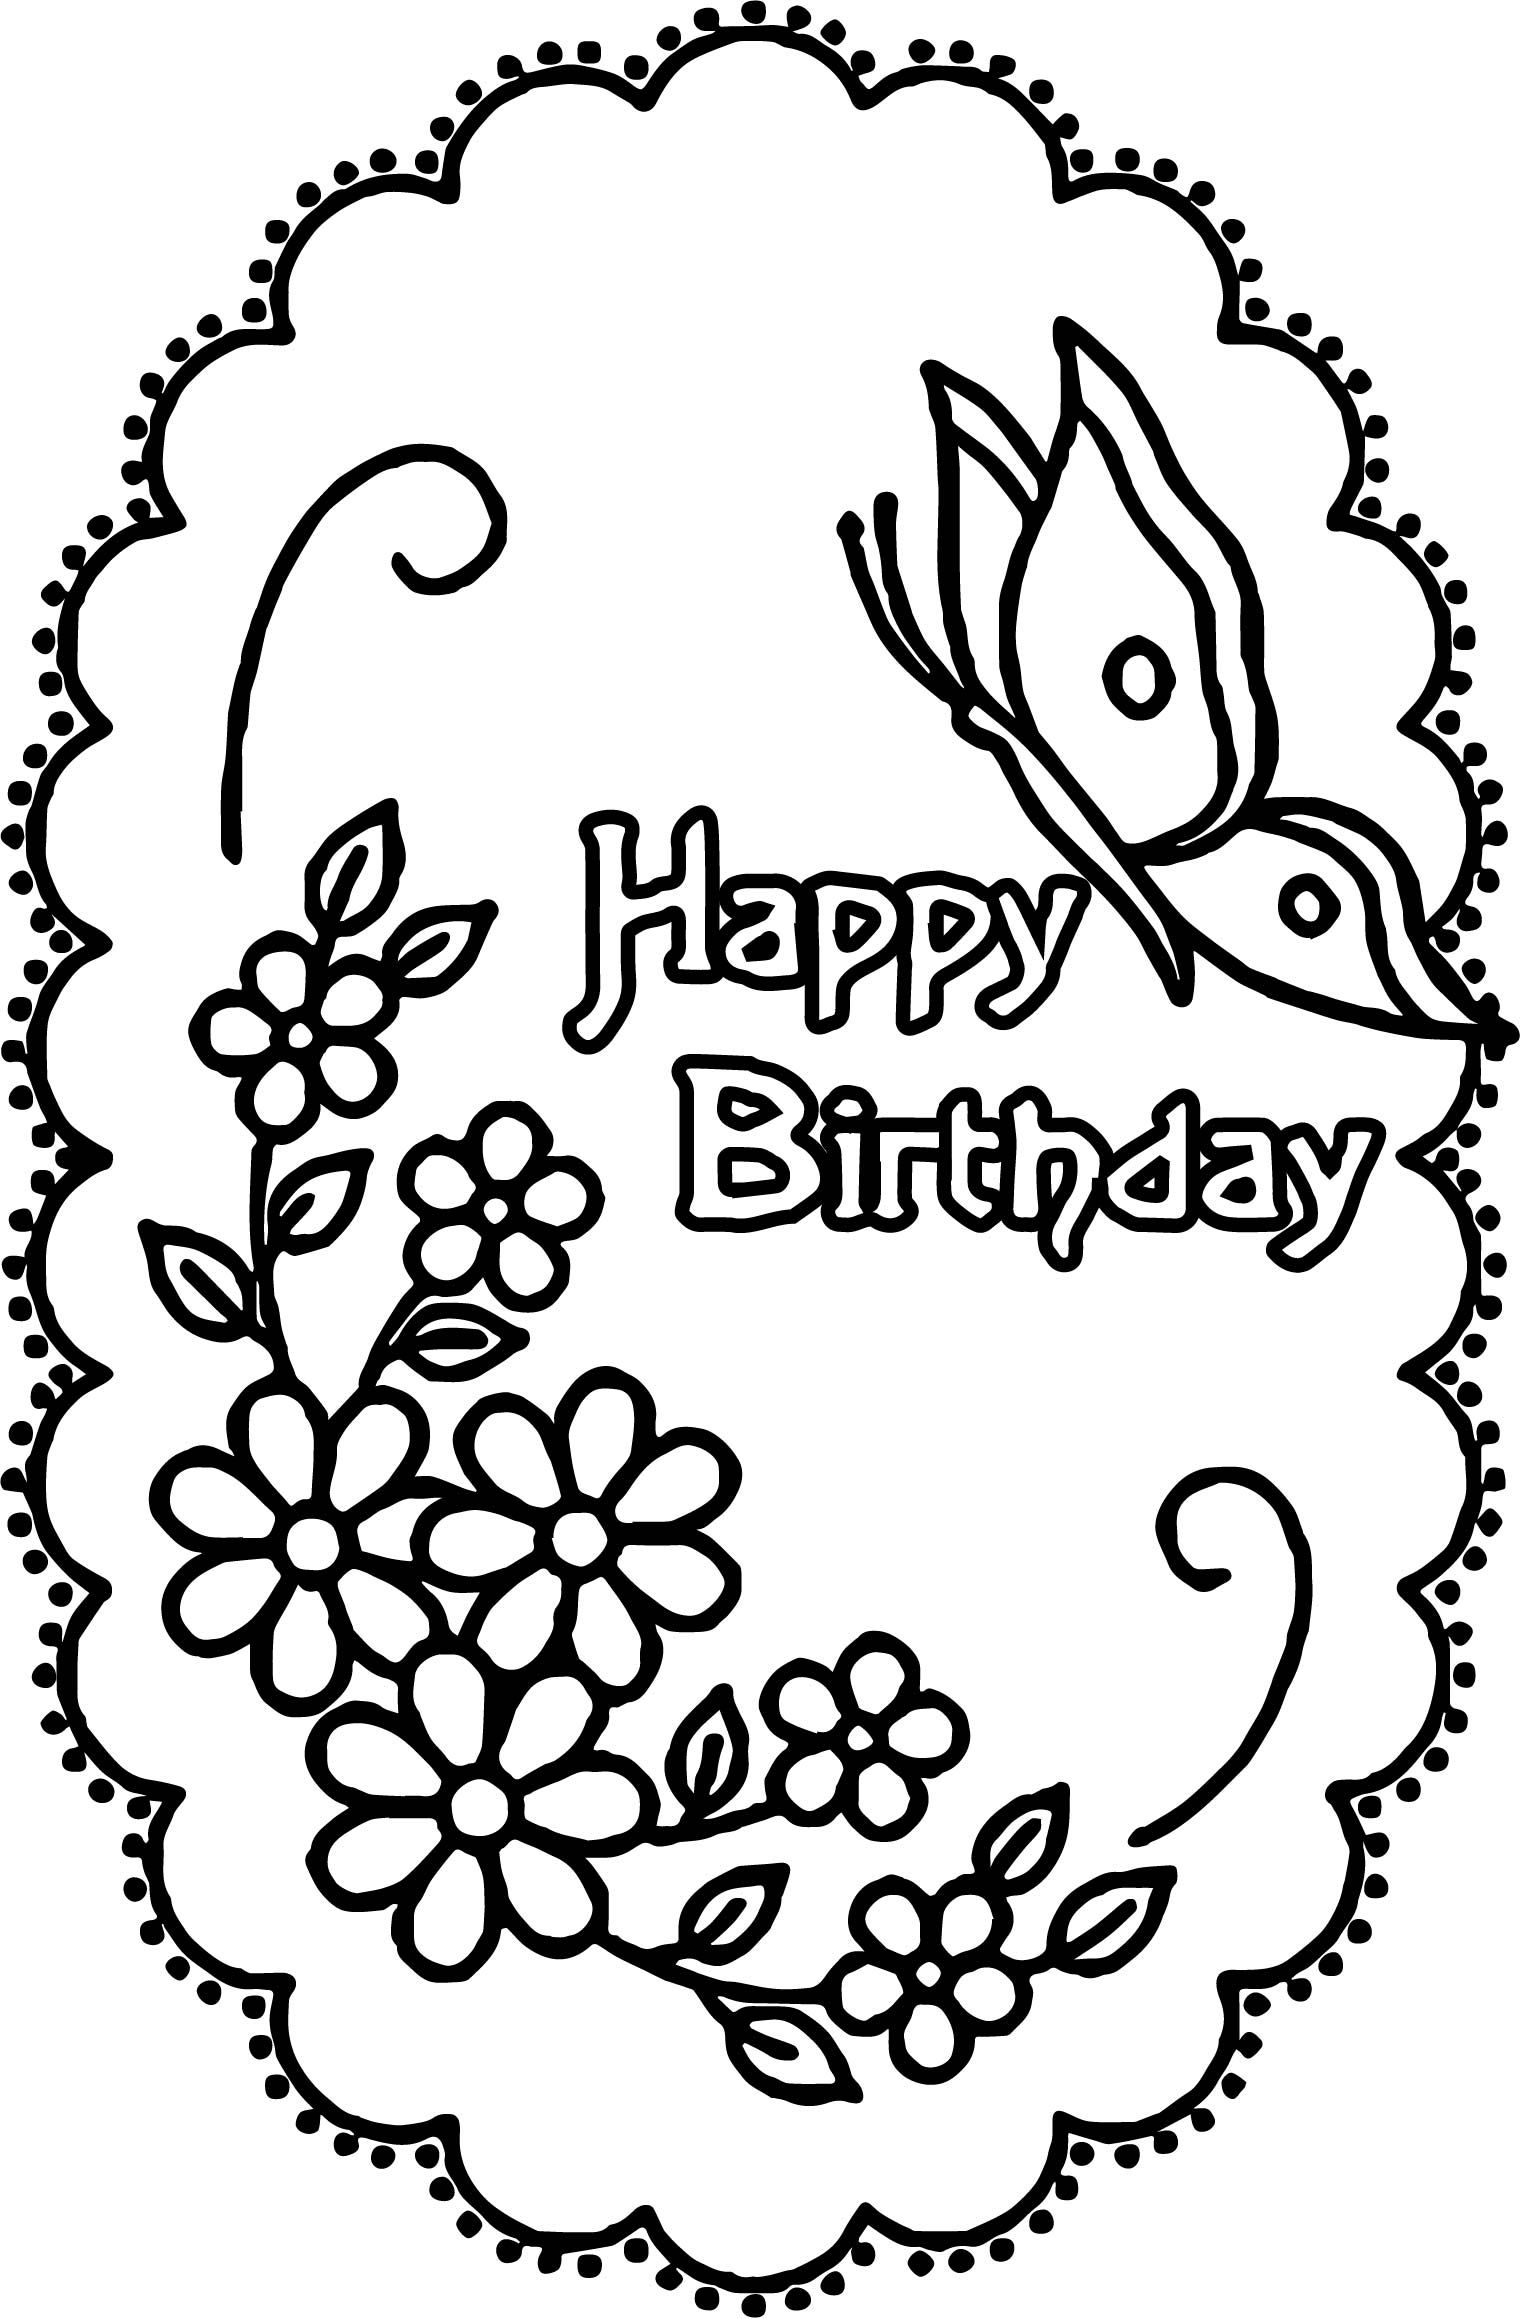 Flowery Happy Birthday Coloring Pages Birthday Coloring Pages Happy Birthday Coloring Pages Butterfly Coloring Page